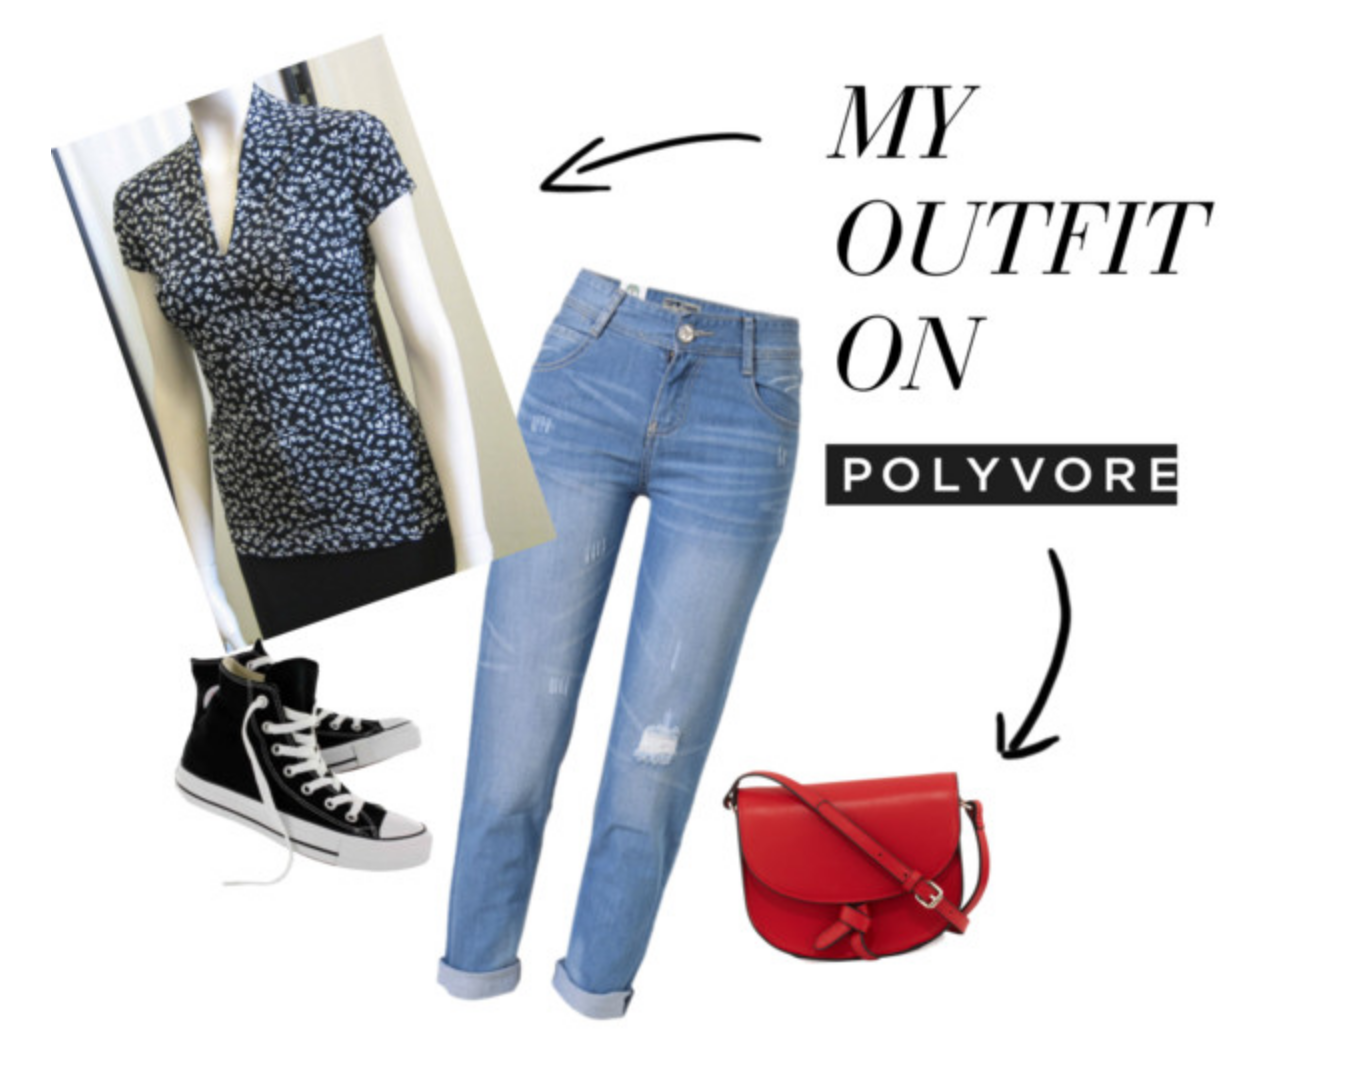 From left, a cap sleeve floral print Vee neck tee with boyfriend jeans, Converse sneakers and a bright red saddle bag